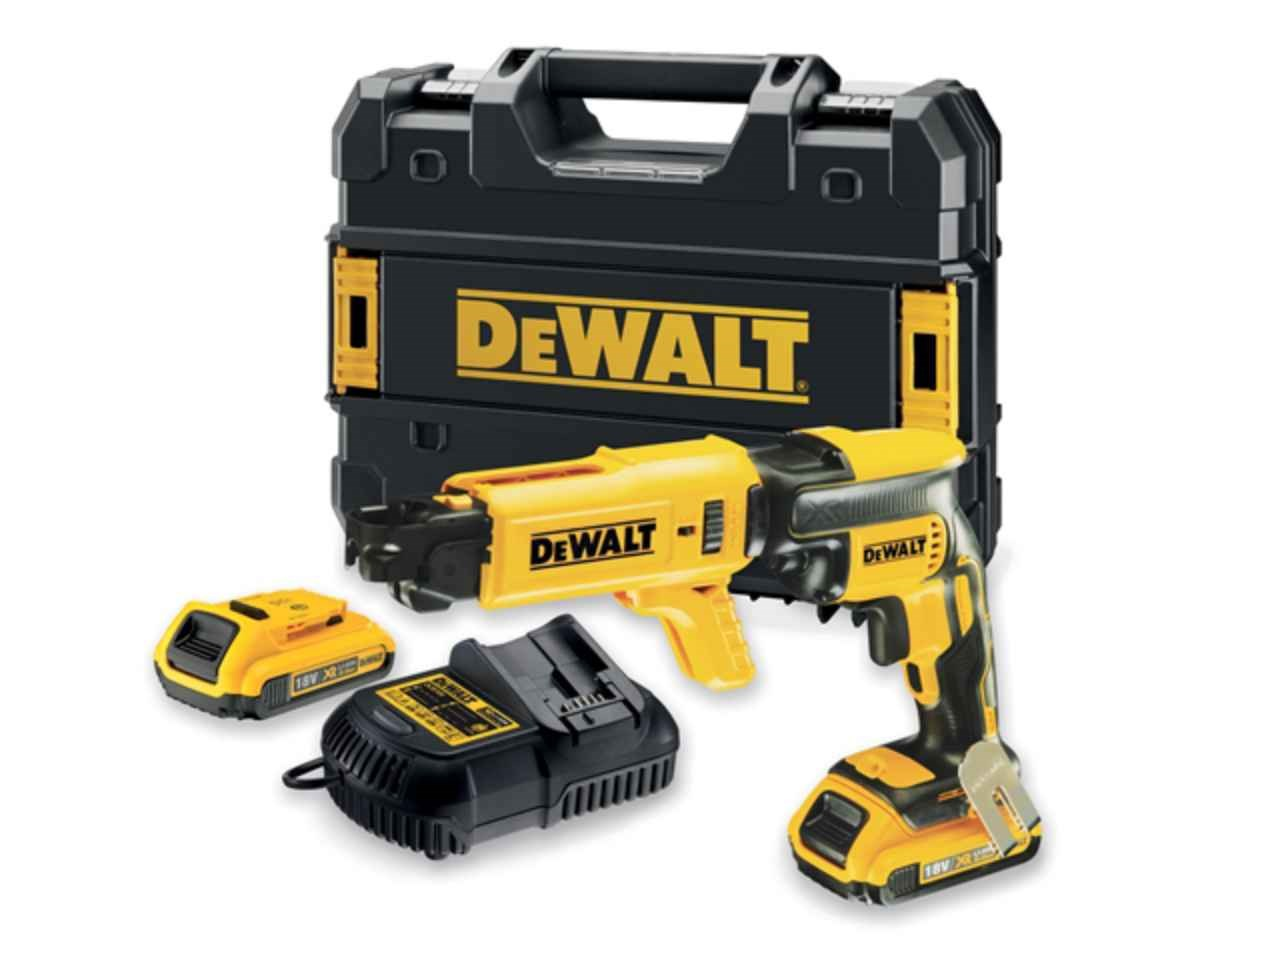 dewalt screw gun. dewalt screw gun a